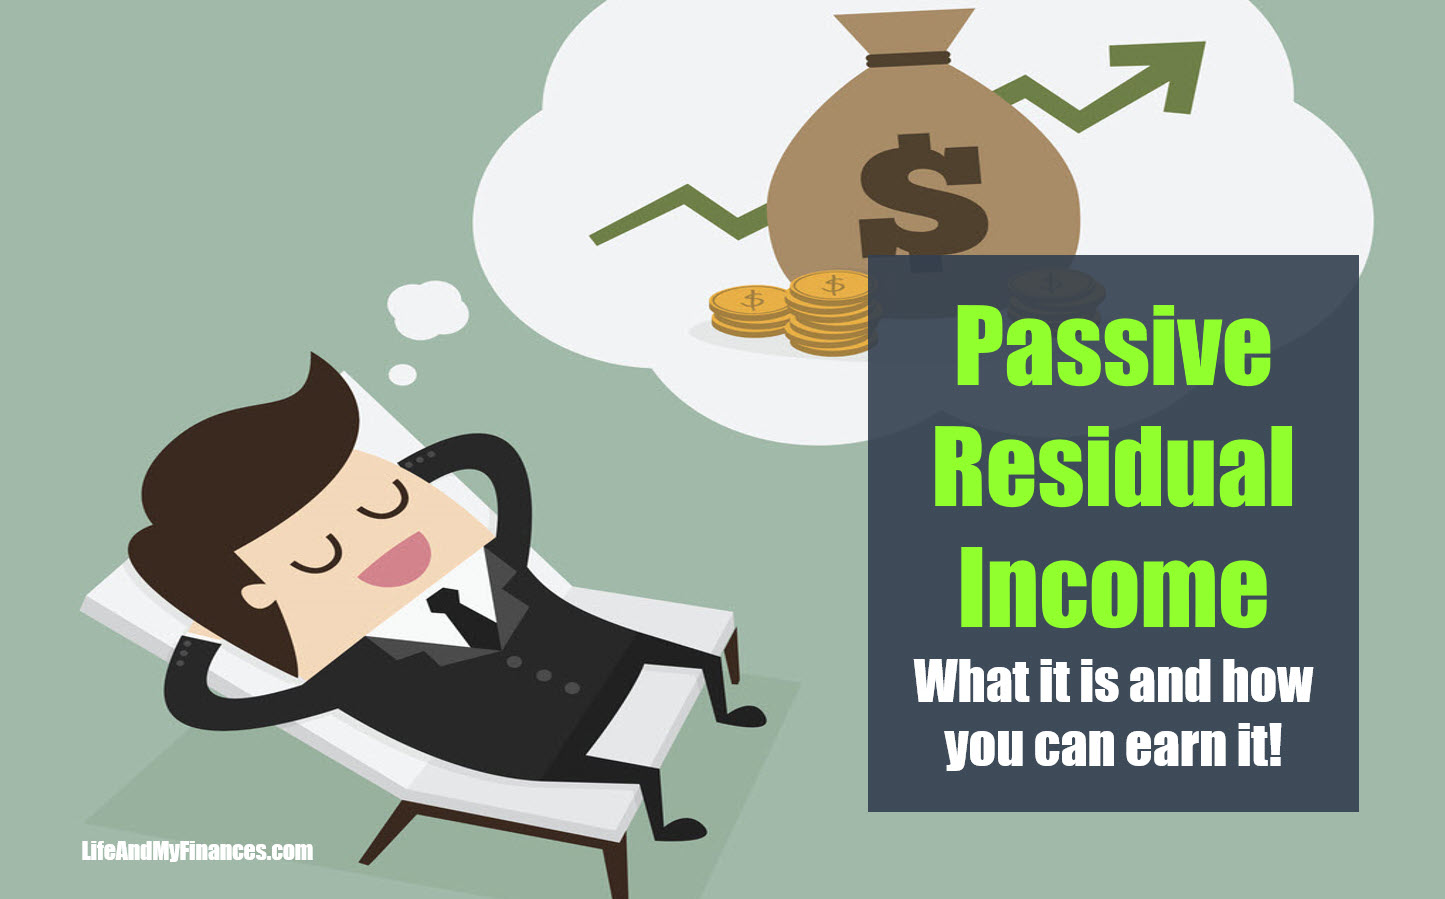 Passive Residual Income - What It Is And How You Can Earn It!!